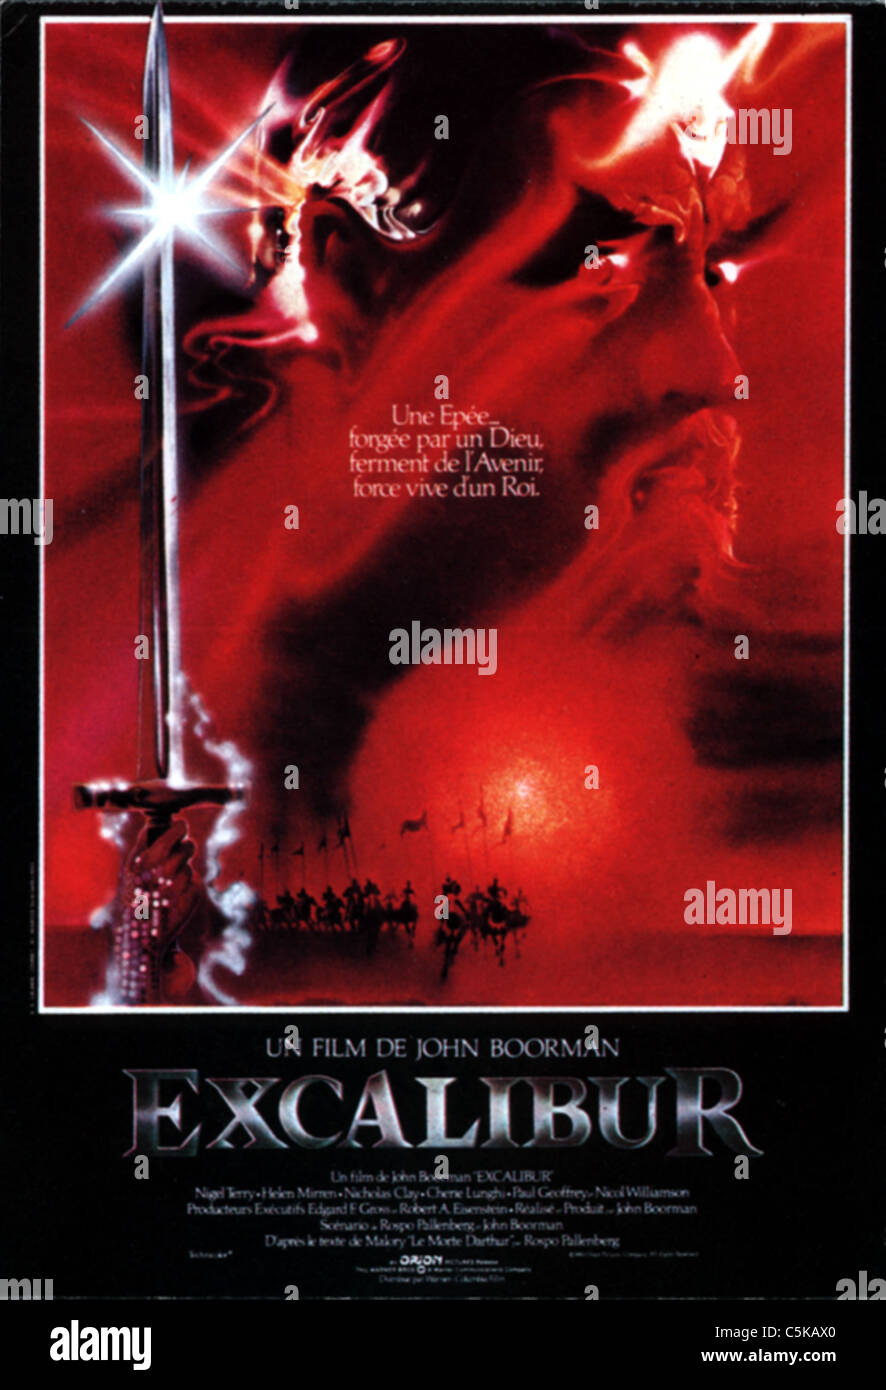 excalibur year 1981 usa affiche poster director john